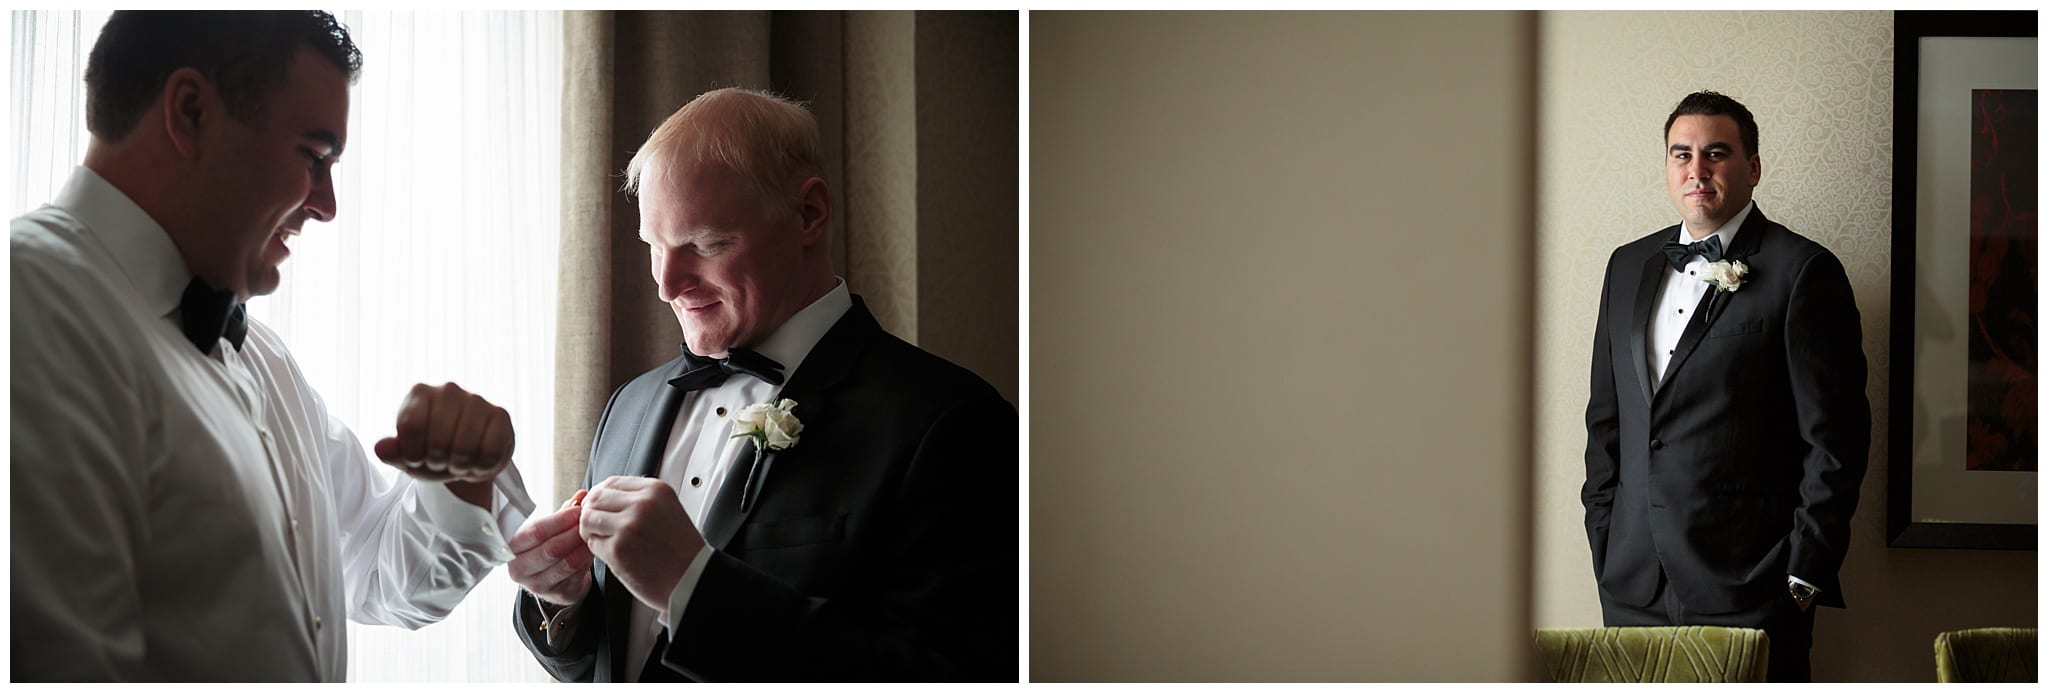 Palmer House Wedding - Wes Craft Photography